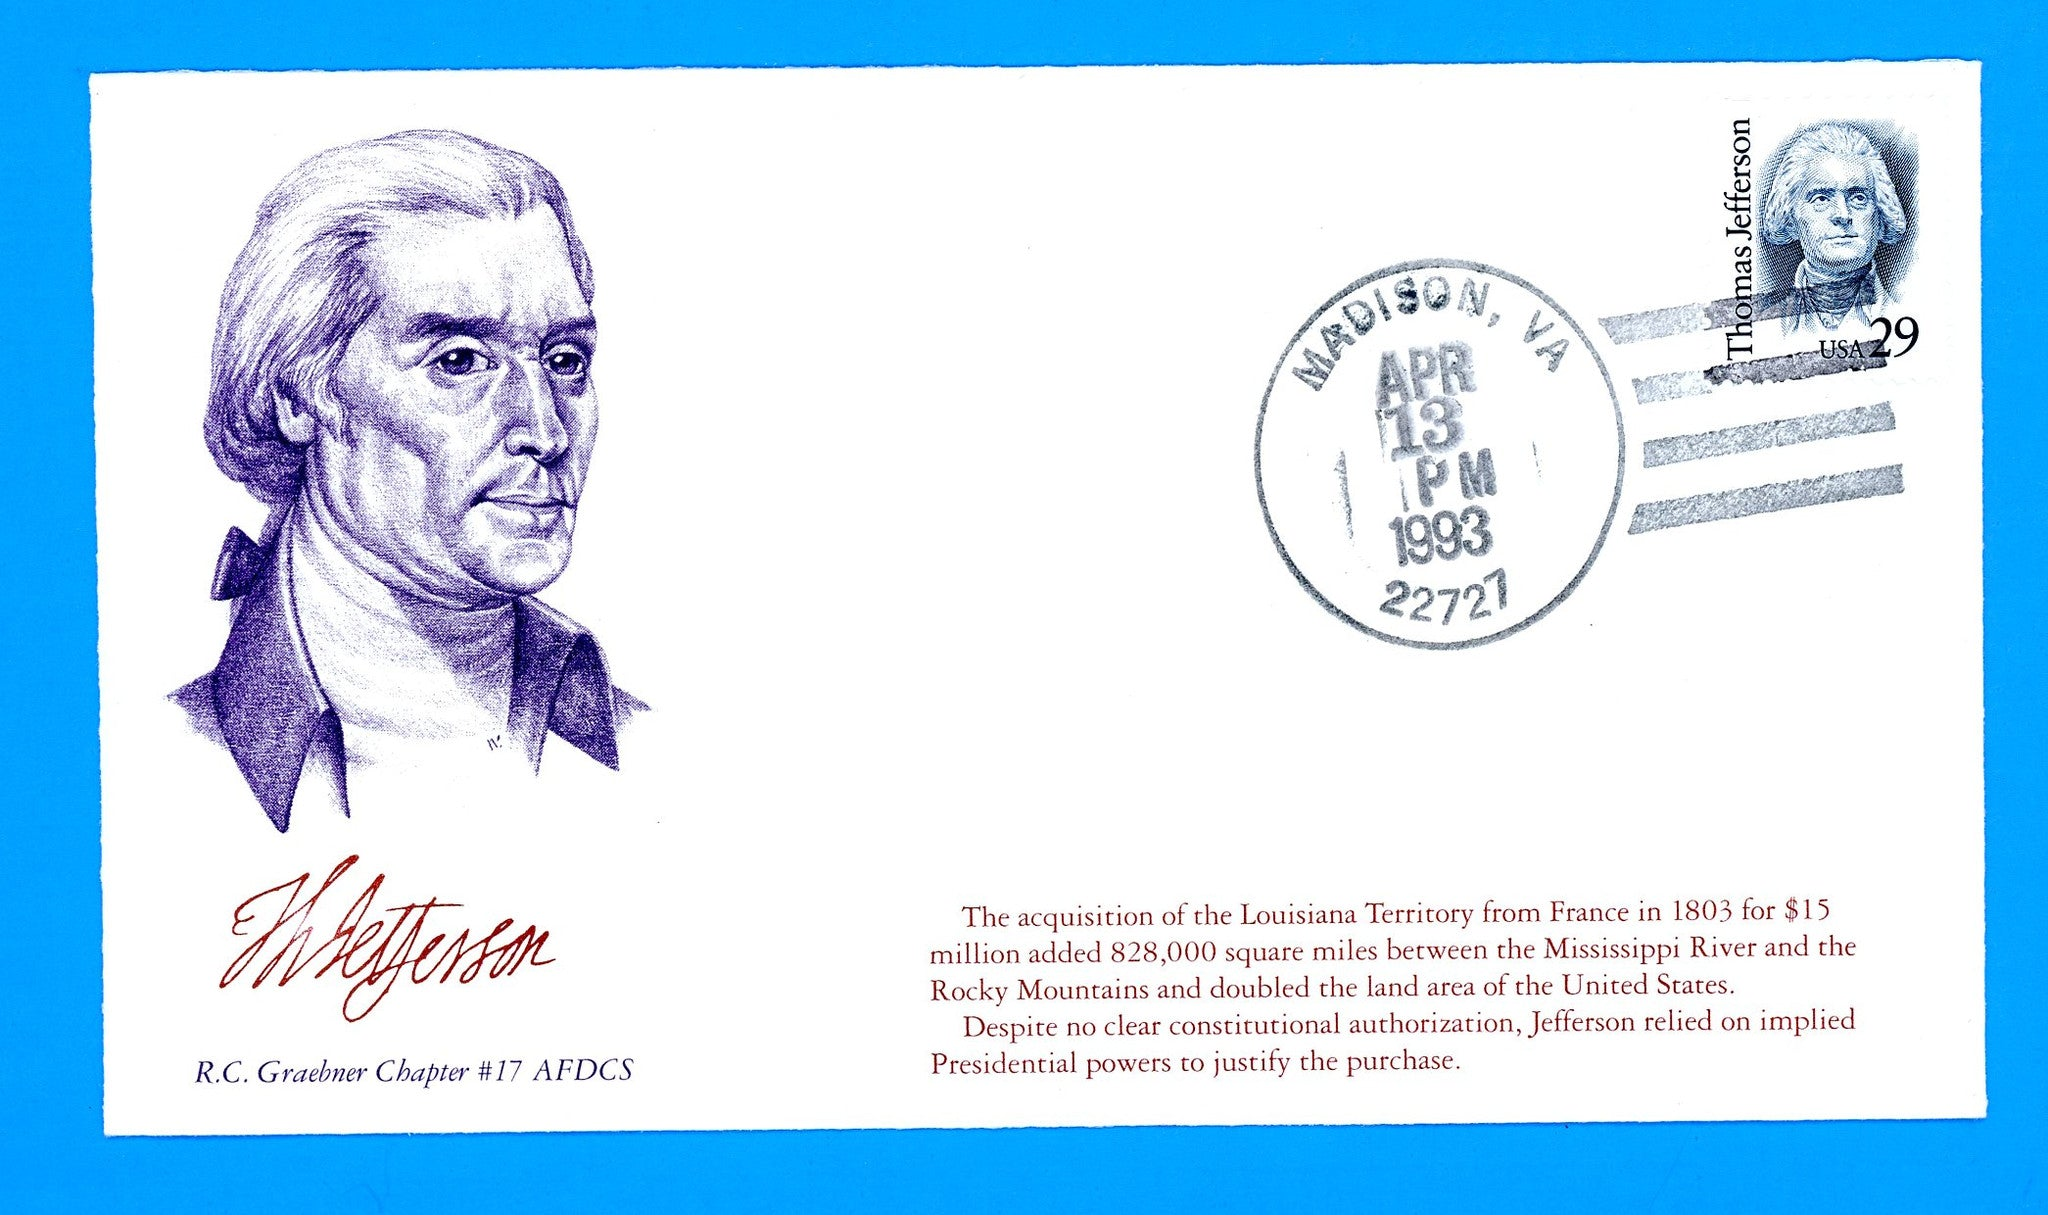 Scott 2185 29c Thomas Jefferson First Day Cover by Graebner Chapter, AFDCS - Unofficial Madison, VA Cancel